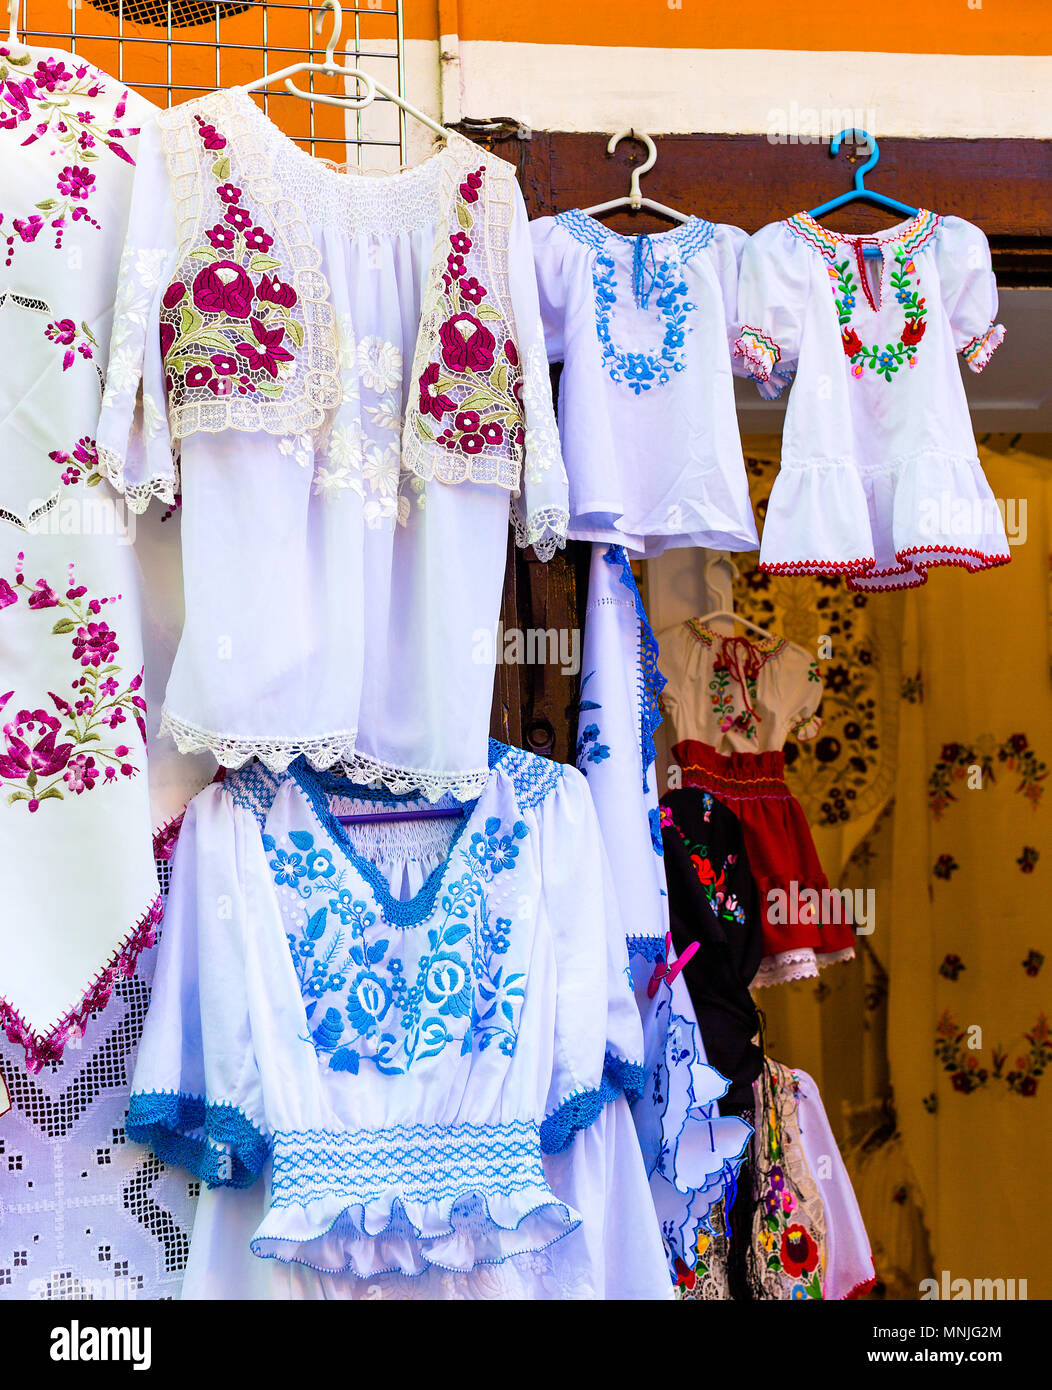 Beautiful bright ethnic shirts and tablecloths with traditional Hungarian embroidery in a street store. Vertical photo - Stock Image